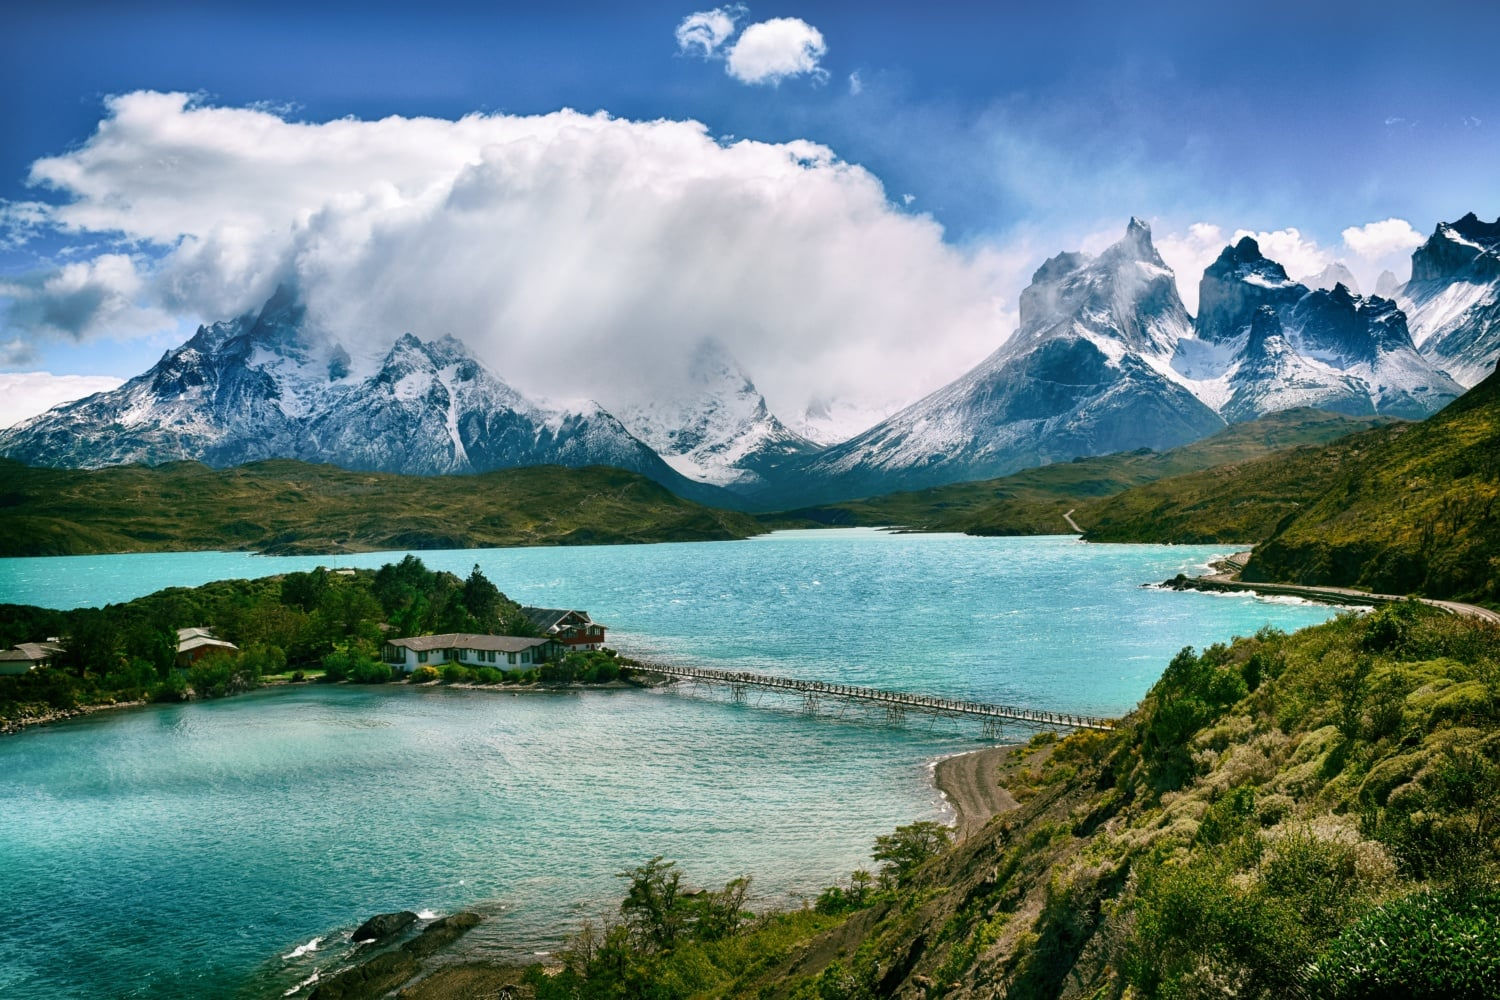 Berge und See im Torres del Paine Nationalpark in Chile